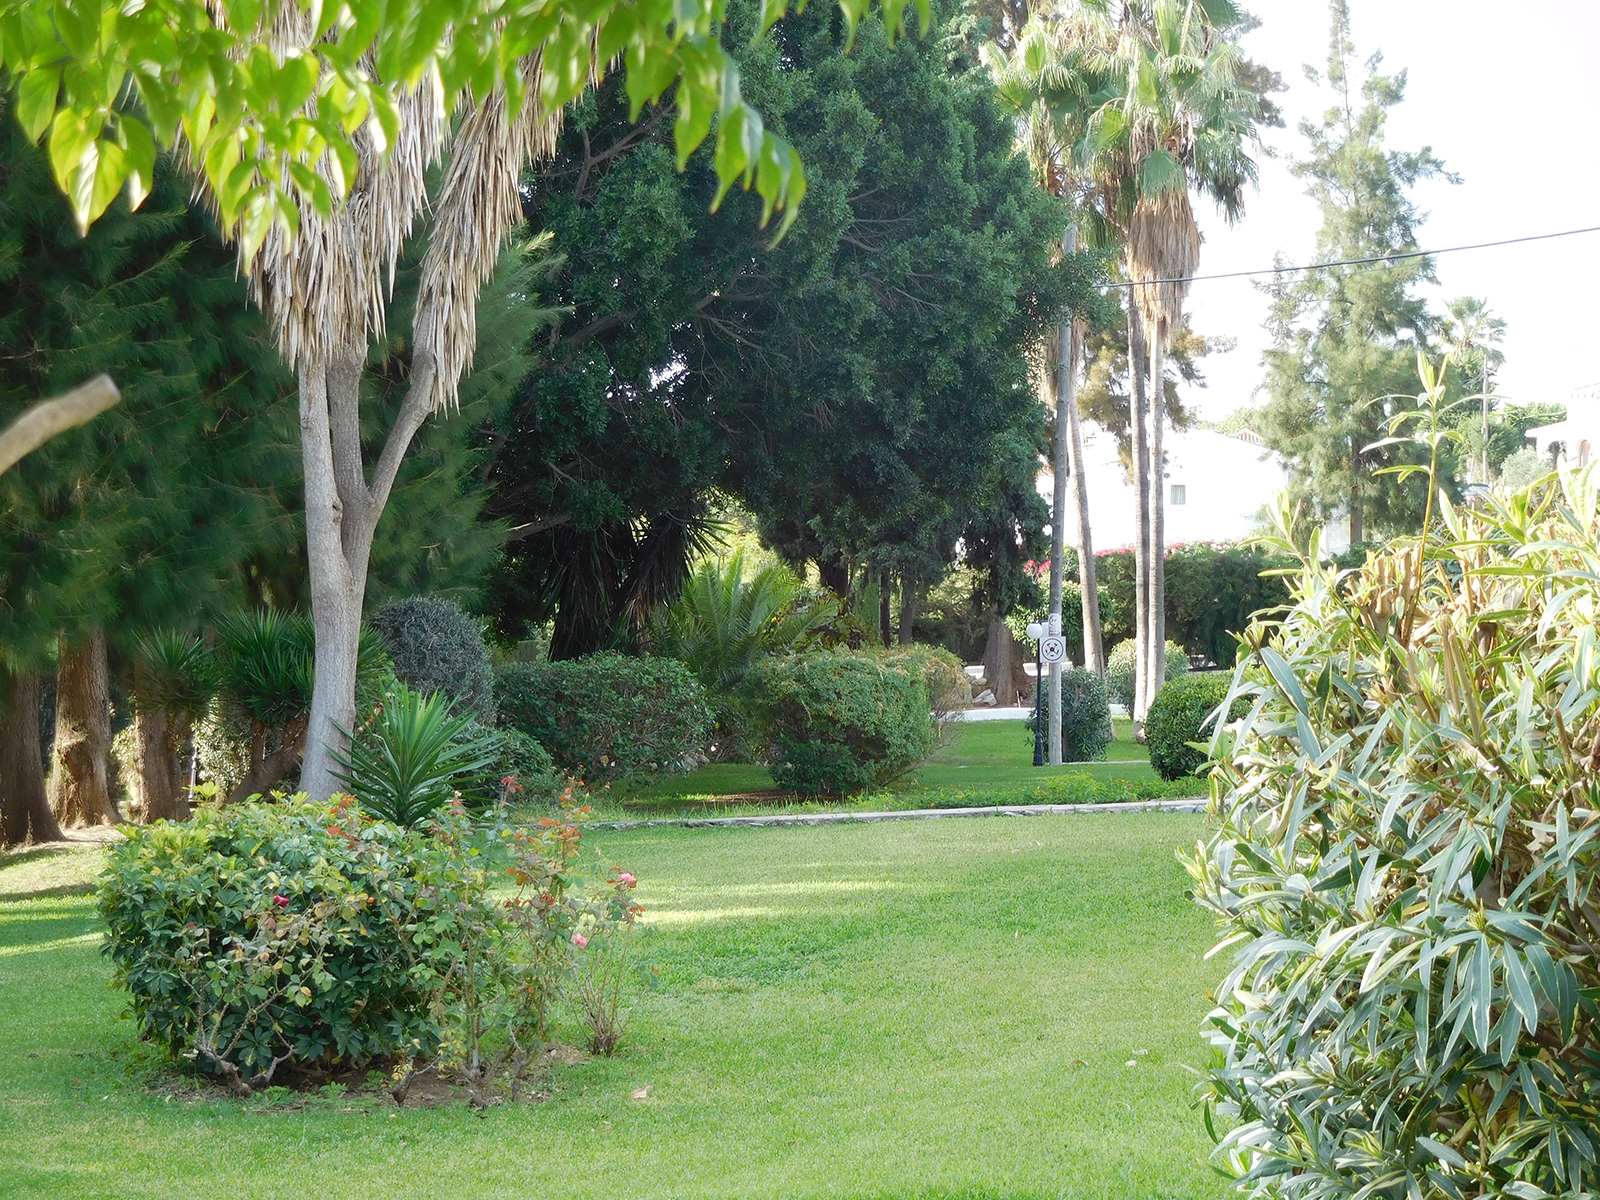 Explore the landscaped gardens